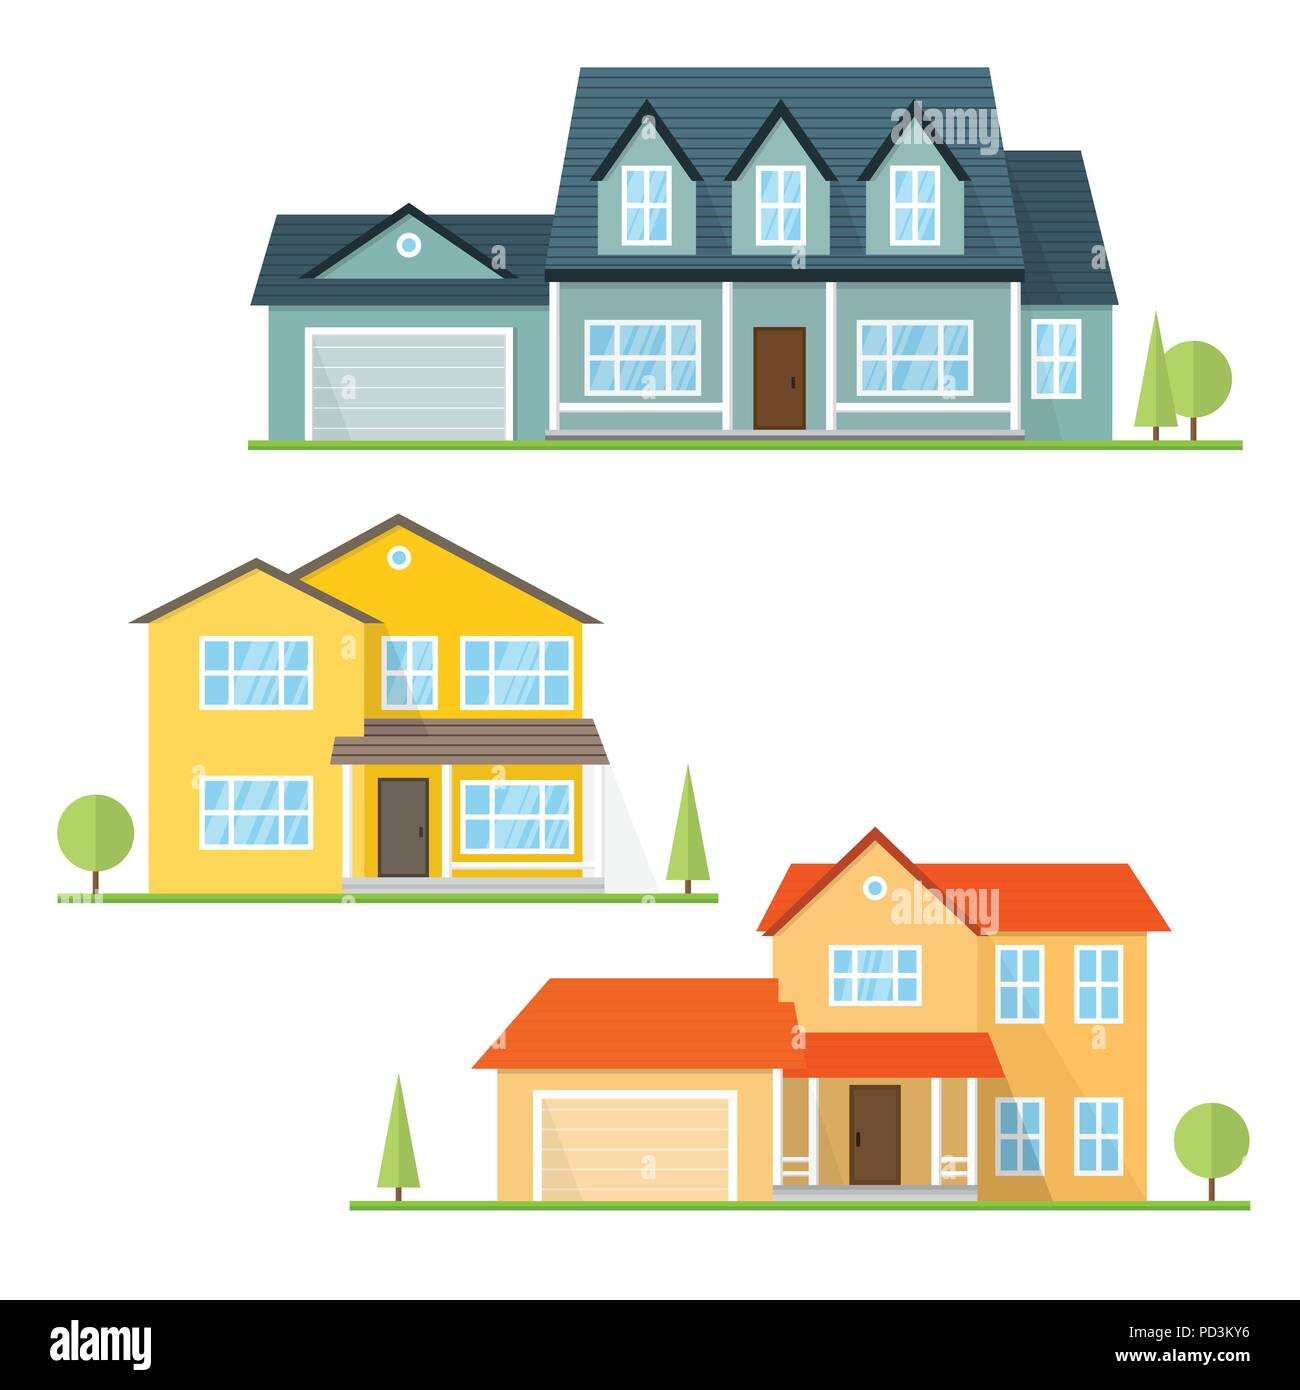 Vector flat icon suburban american house for web design and application interface also useful for infographics family house icon isolated on white